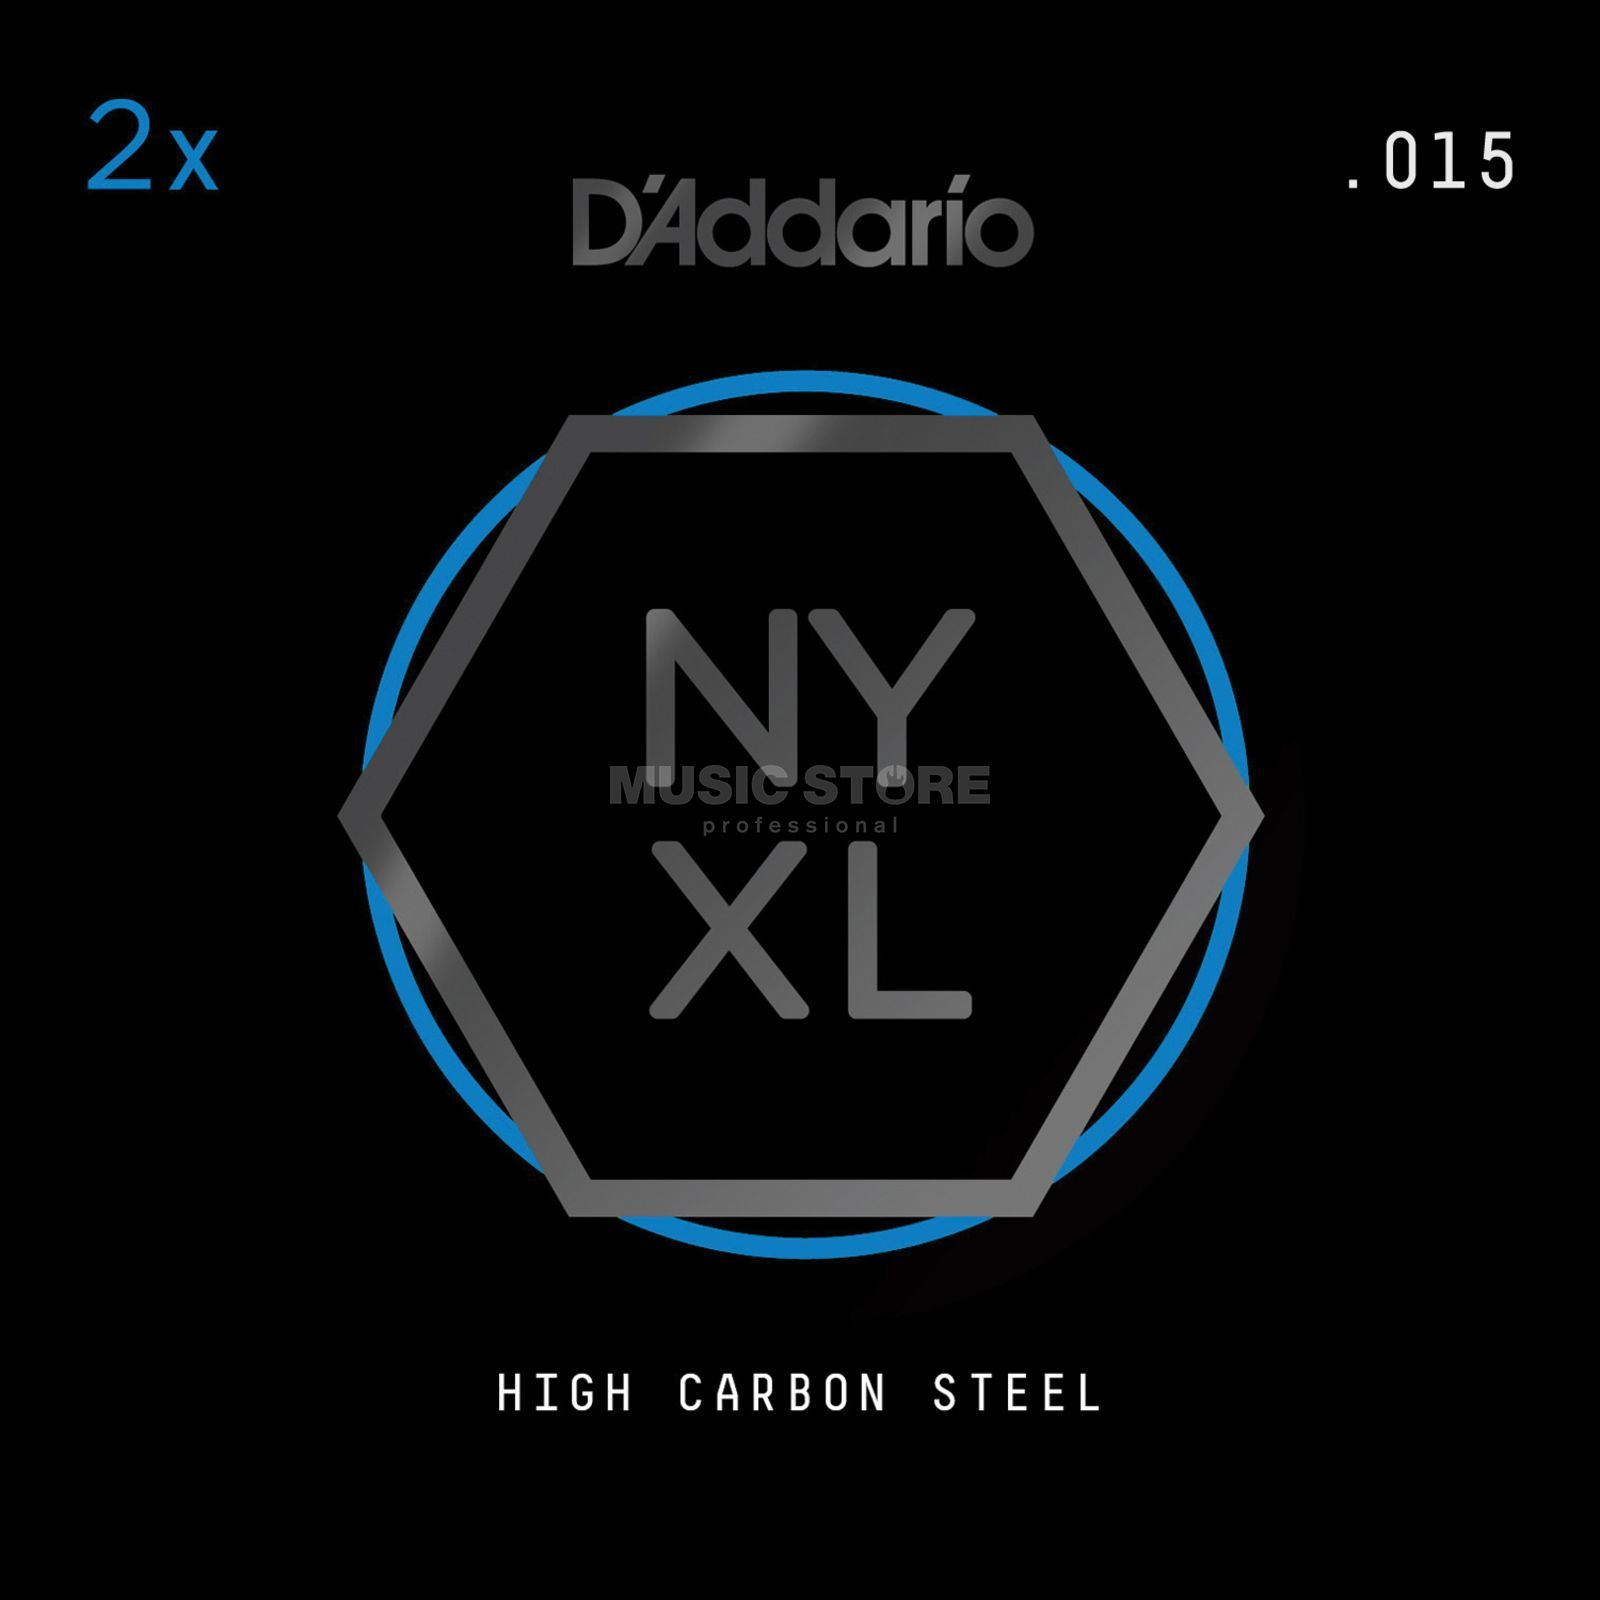 D'Addario NYPL015 Plain Single String 2-Pack - High Carbon Steel Imagem do produto